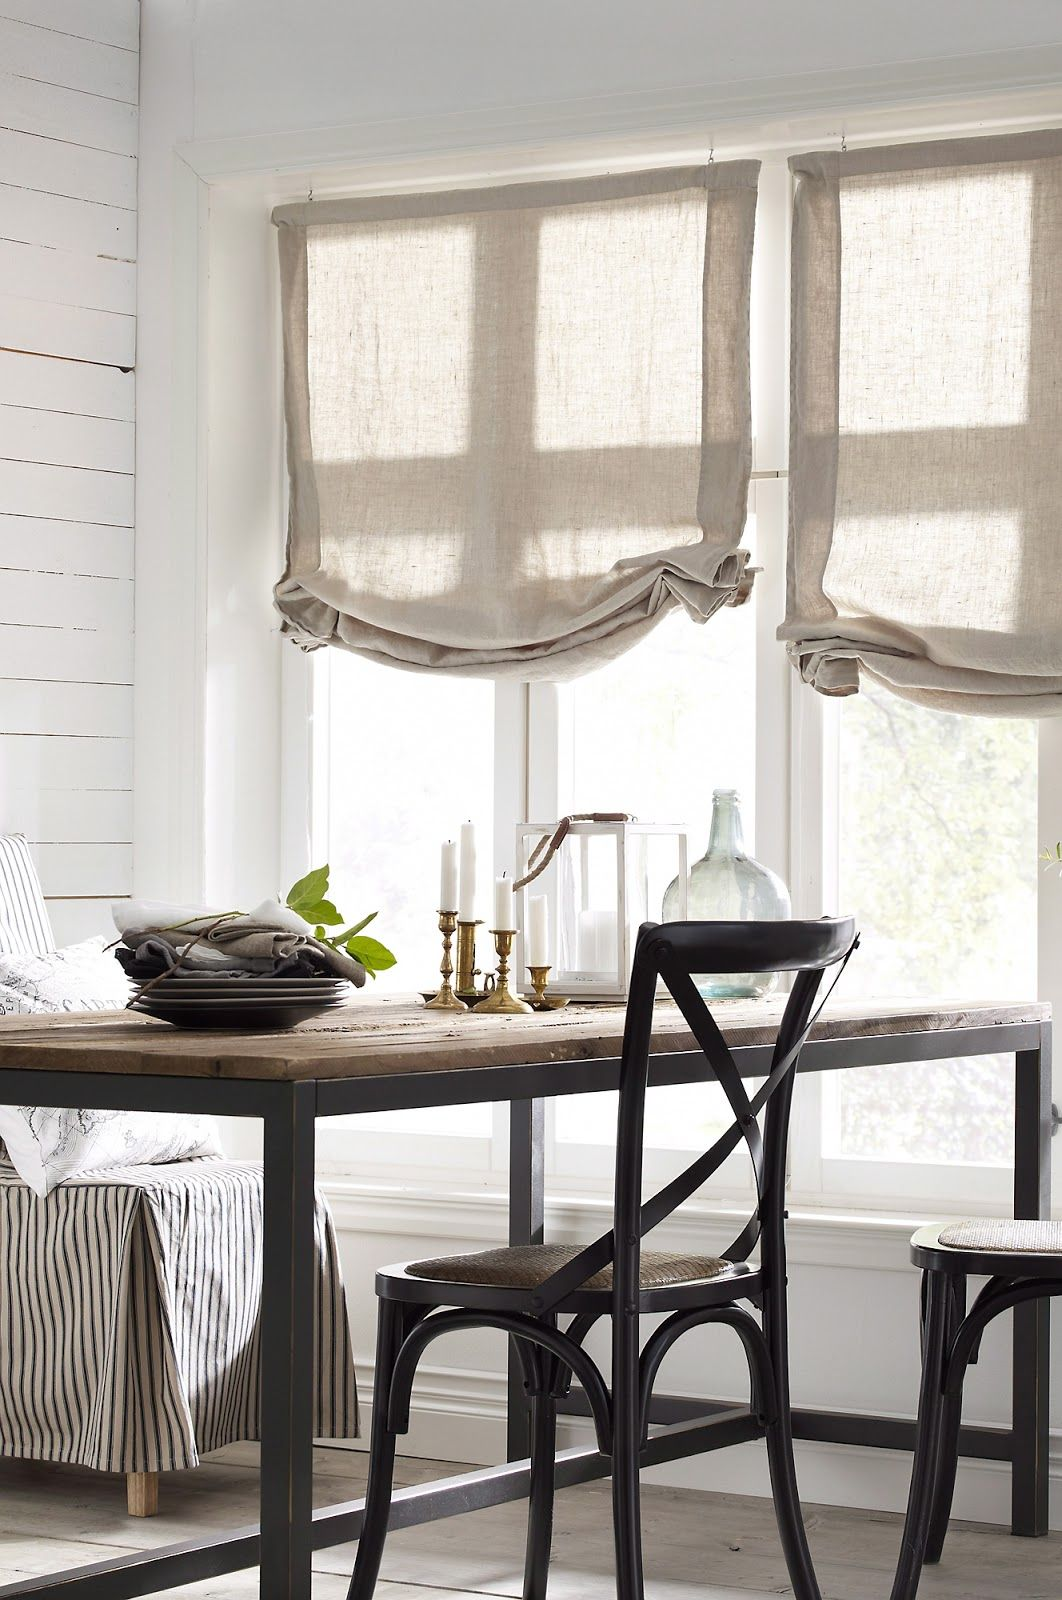 These Are My Favorite Kind Of Roman Shades Simple And Elegant